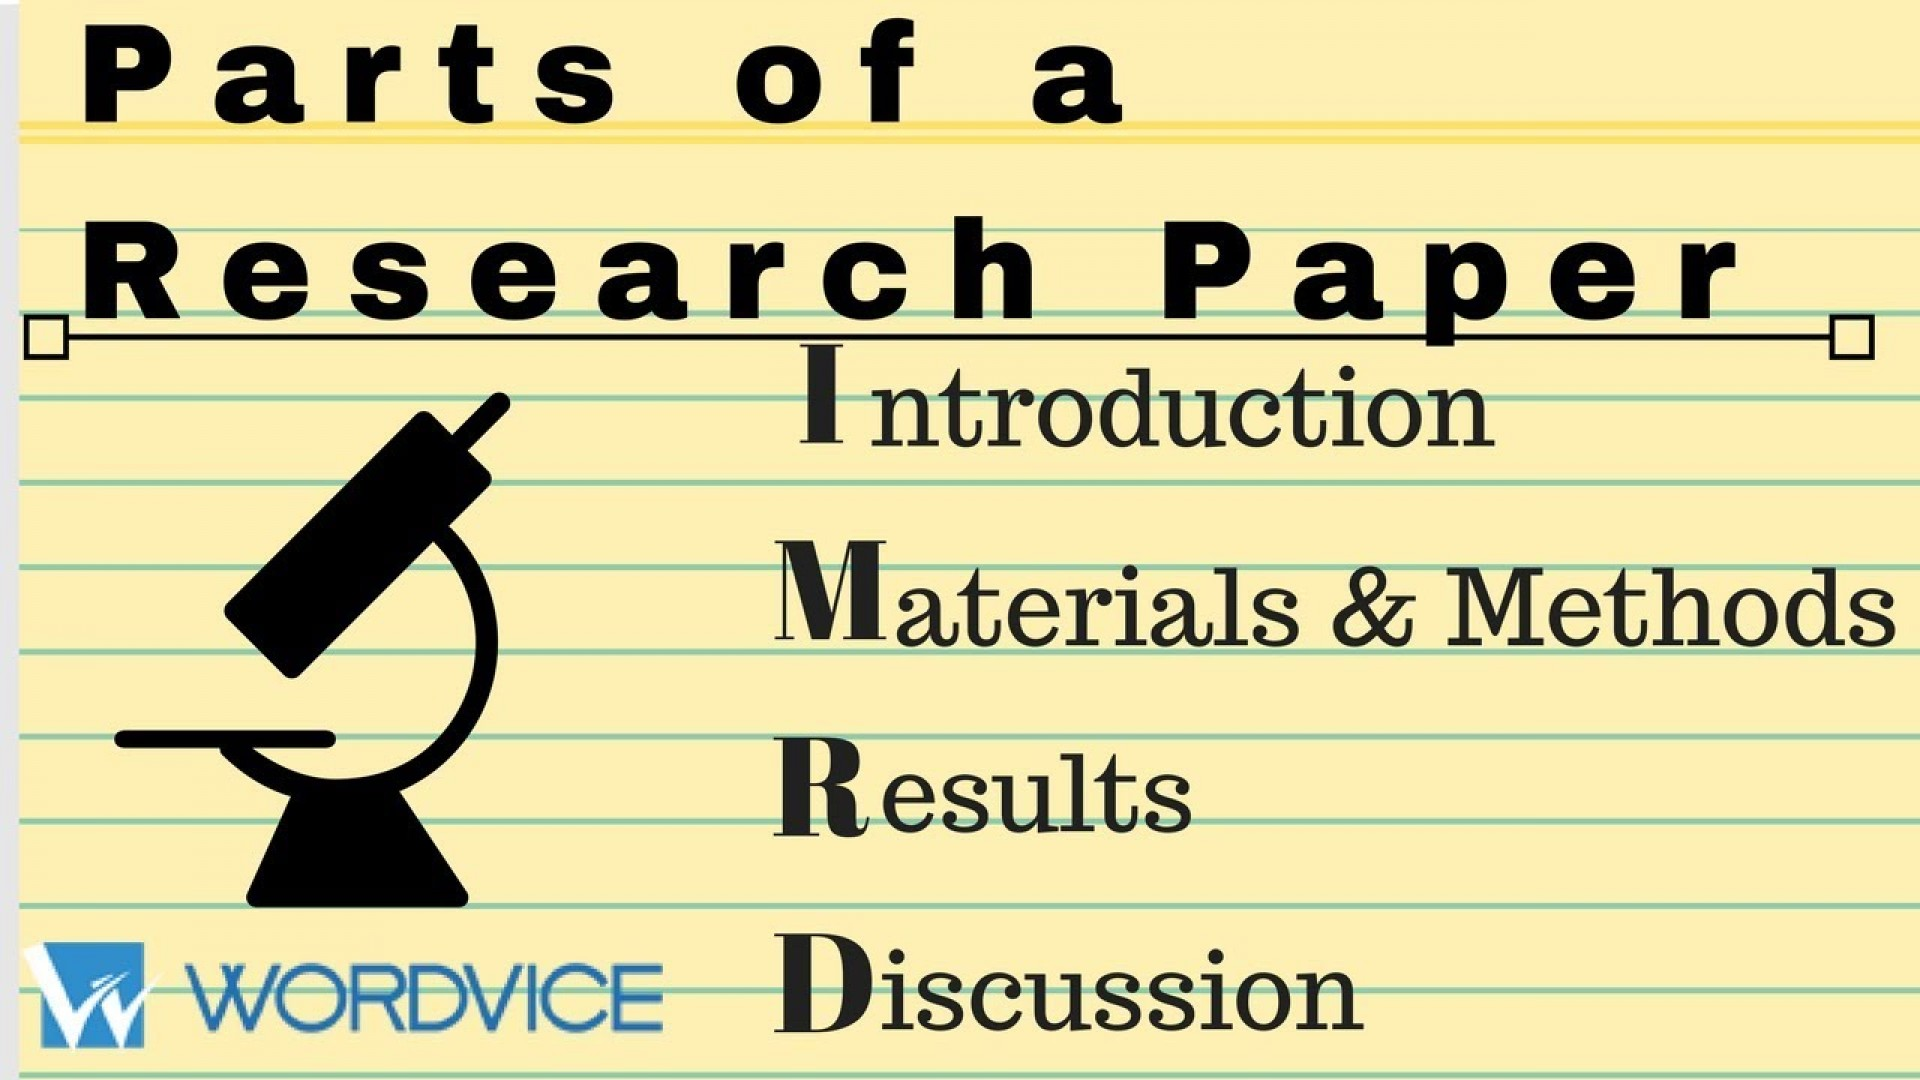 003 Parts Of Research Paper Remarkable Chapter 1 Ppt 5 Pdf 1920